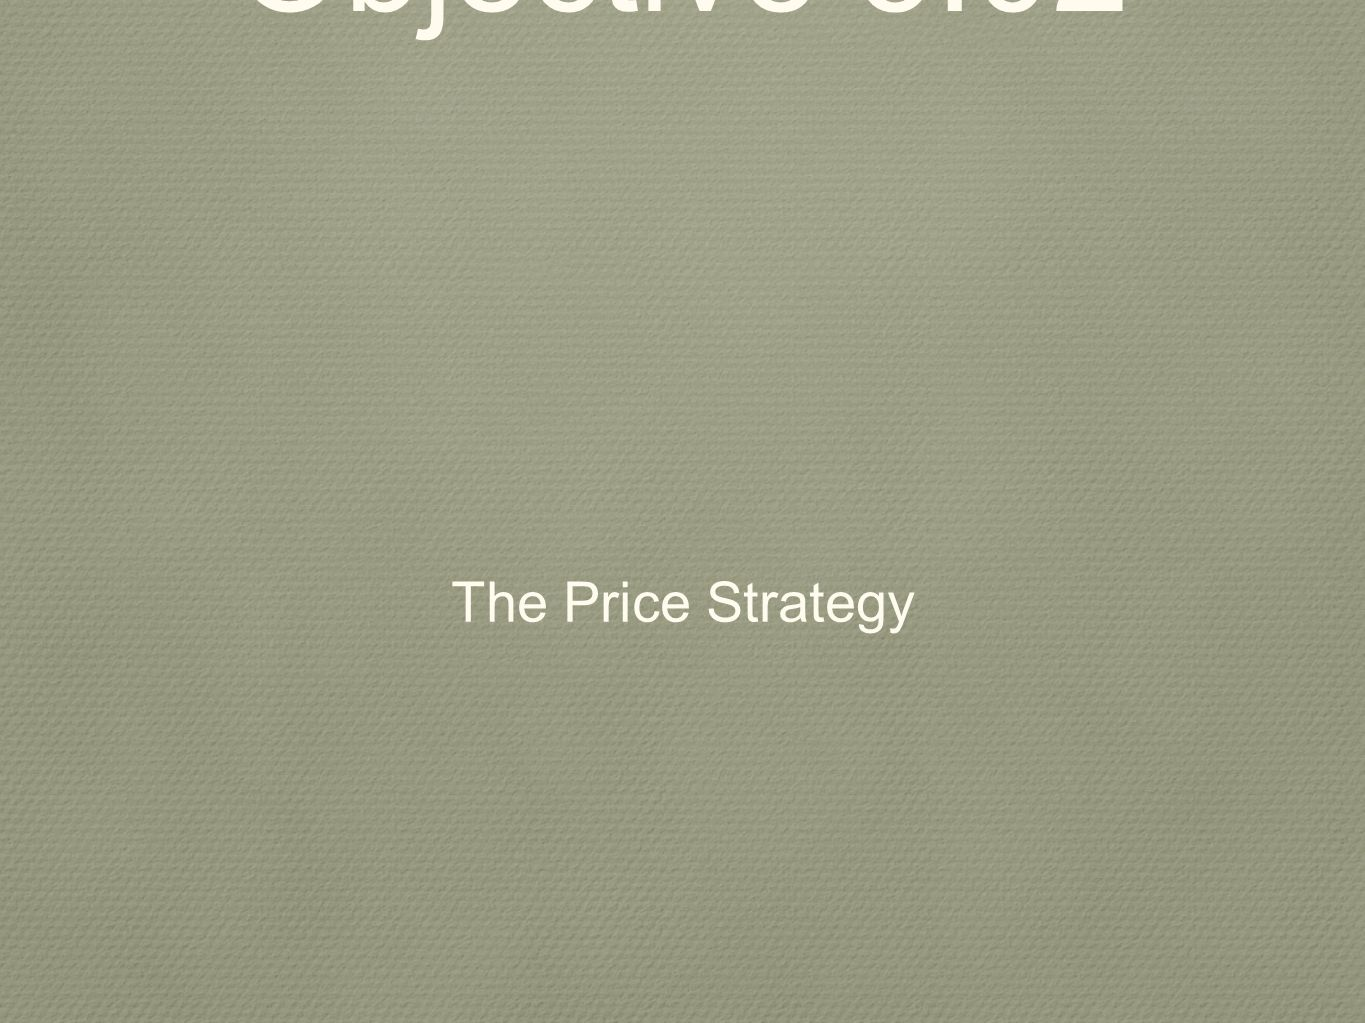 Objective 5.02 The Price Strategy